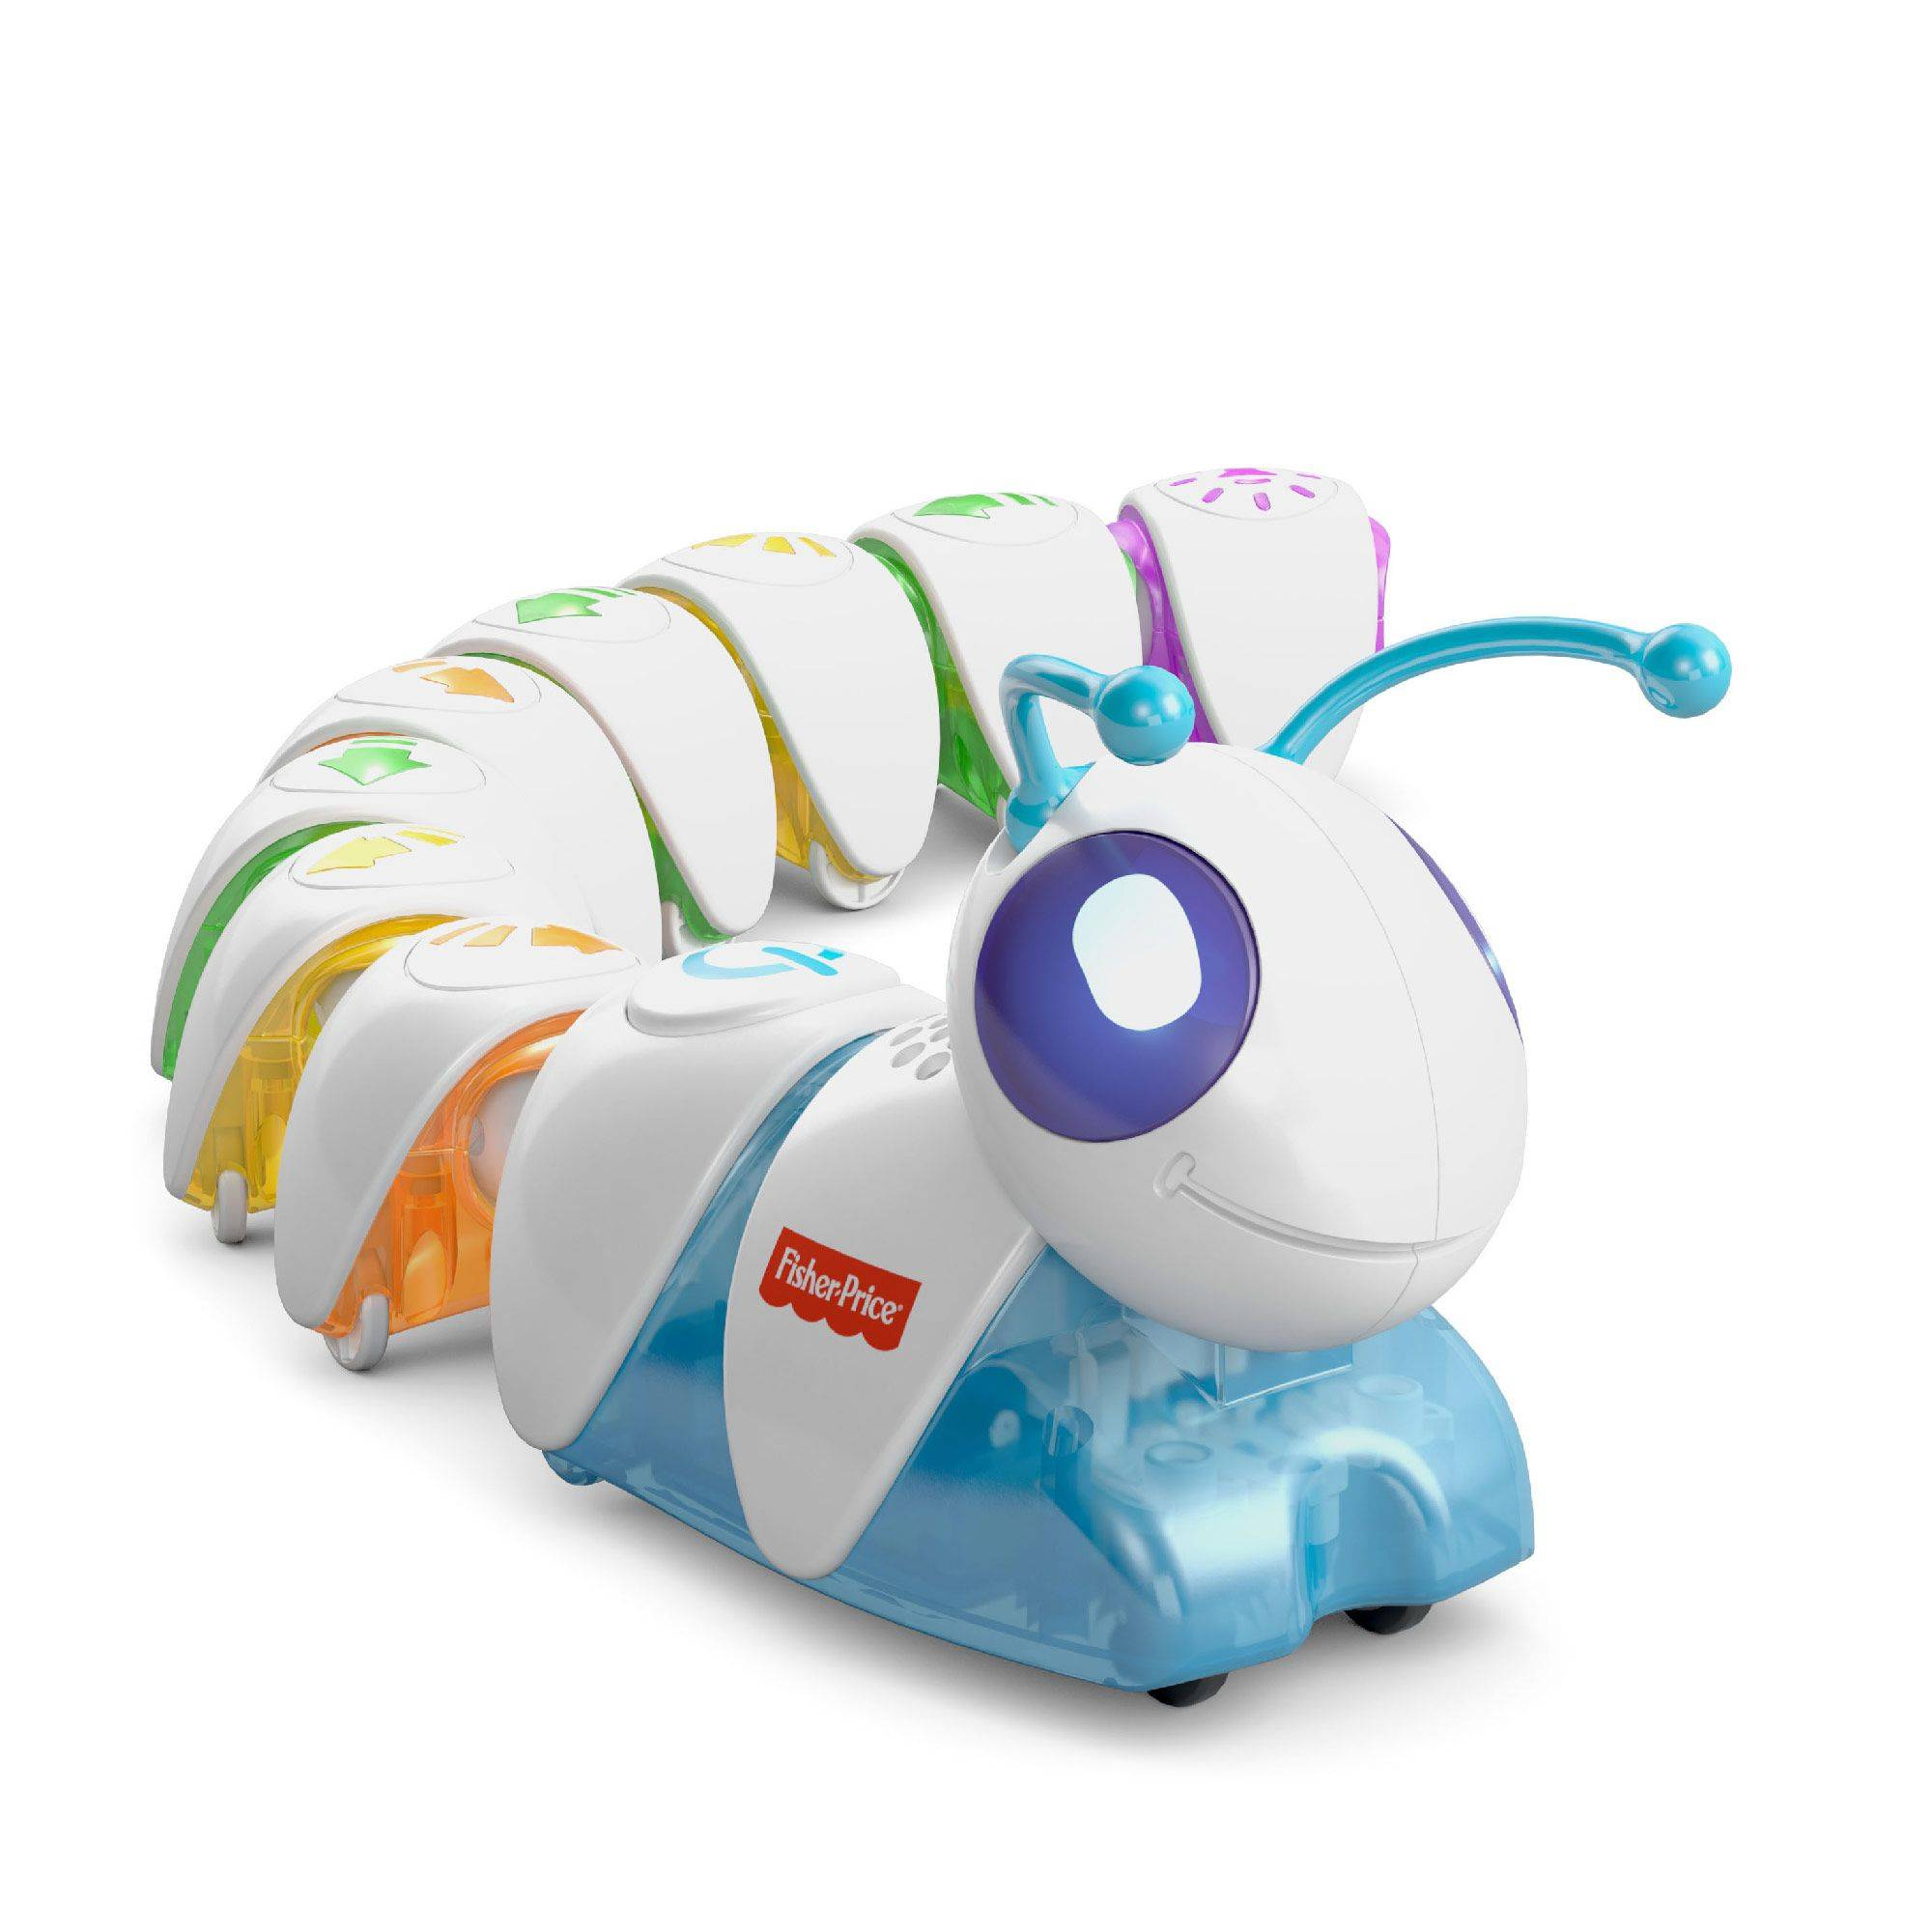 Fisher Price Think & Learn Code-a-pillar